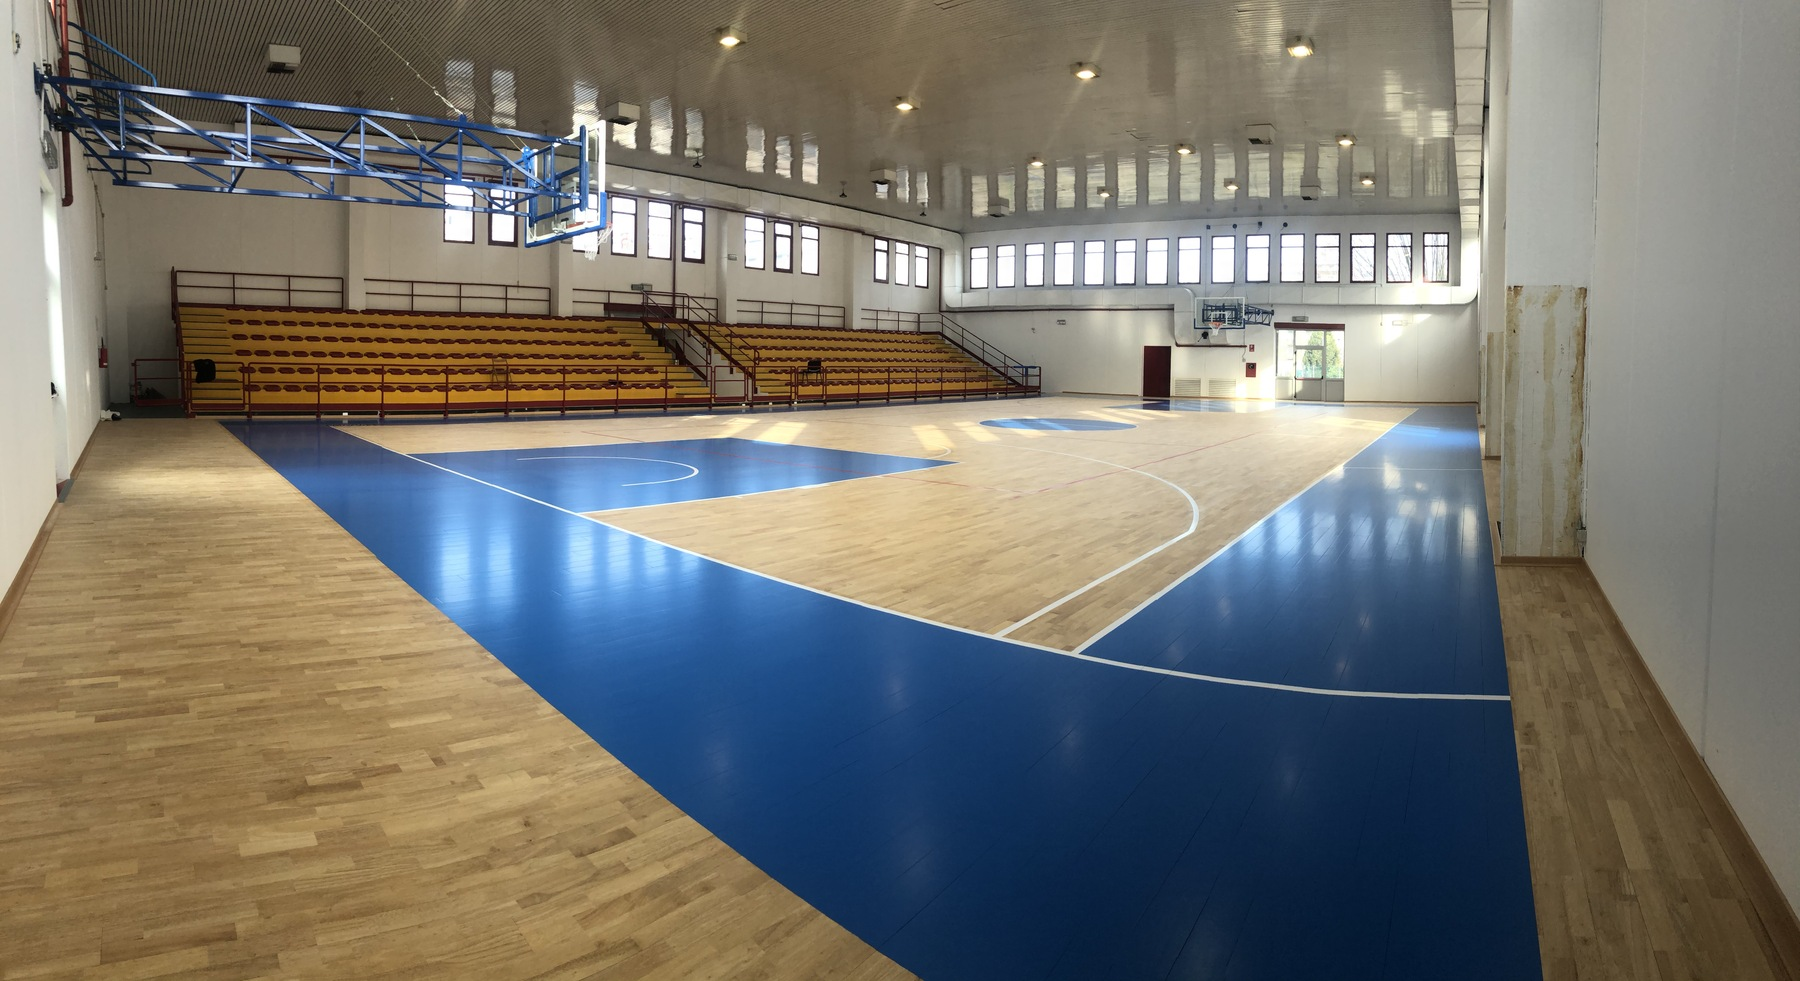 The color blue fiba protagonist on the playing field